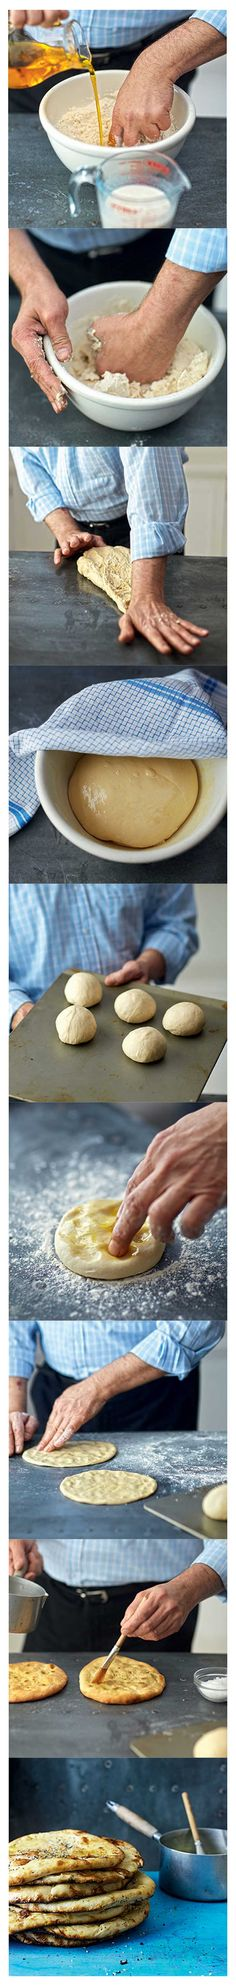 How to make naan breads